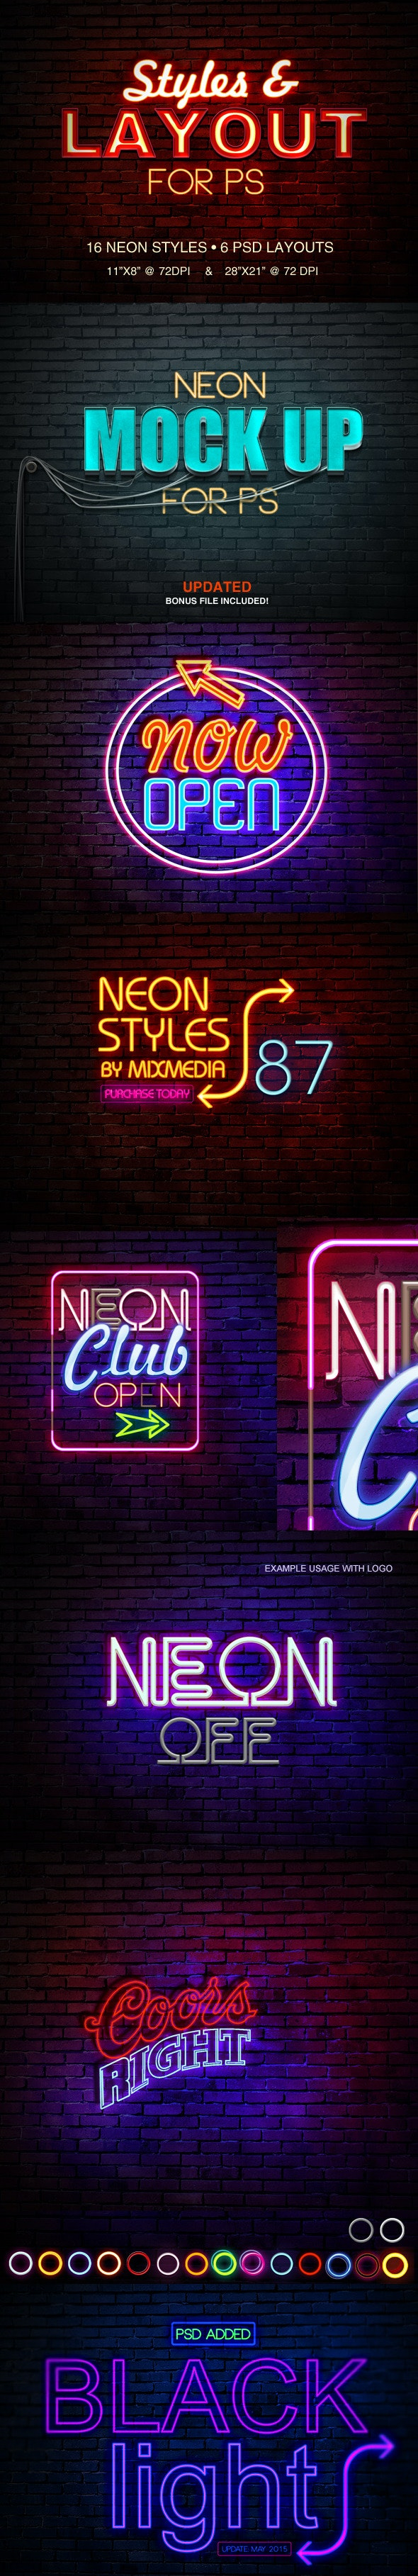 Neon Sign Styles - Photoshop Add-ons